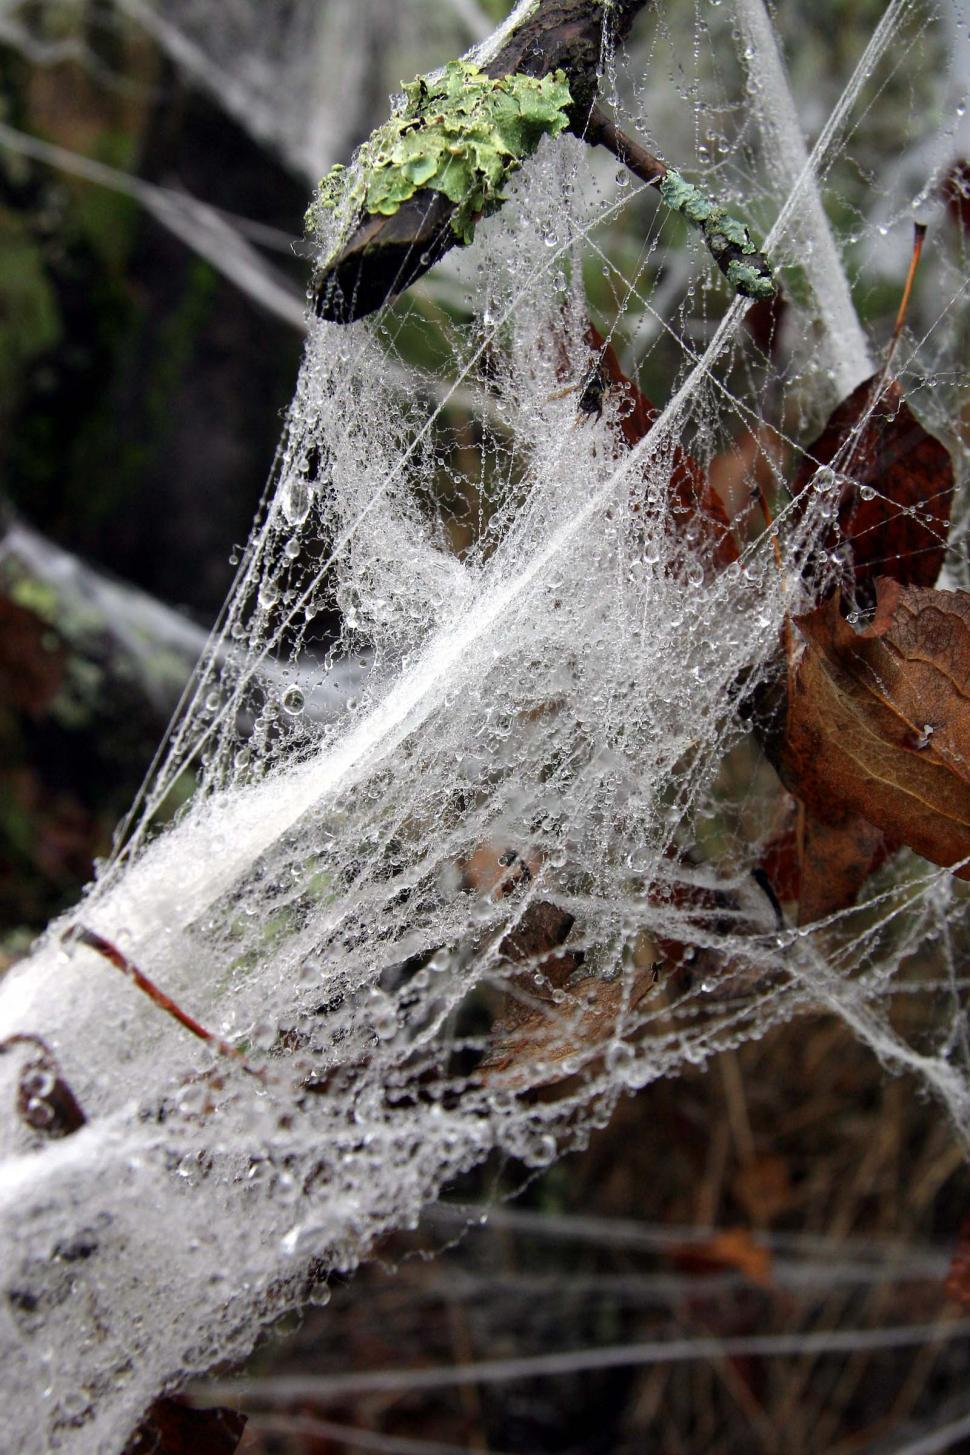 Download Free Stock Photo of halloween decoration web spider wet drips drops rain